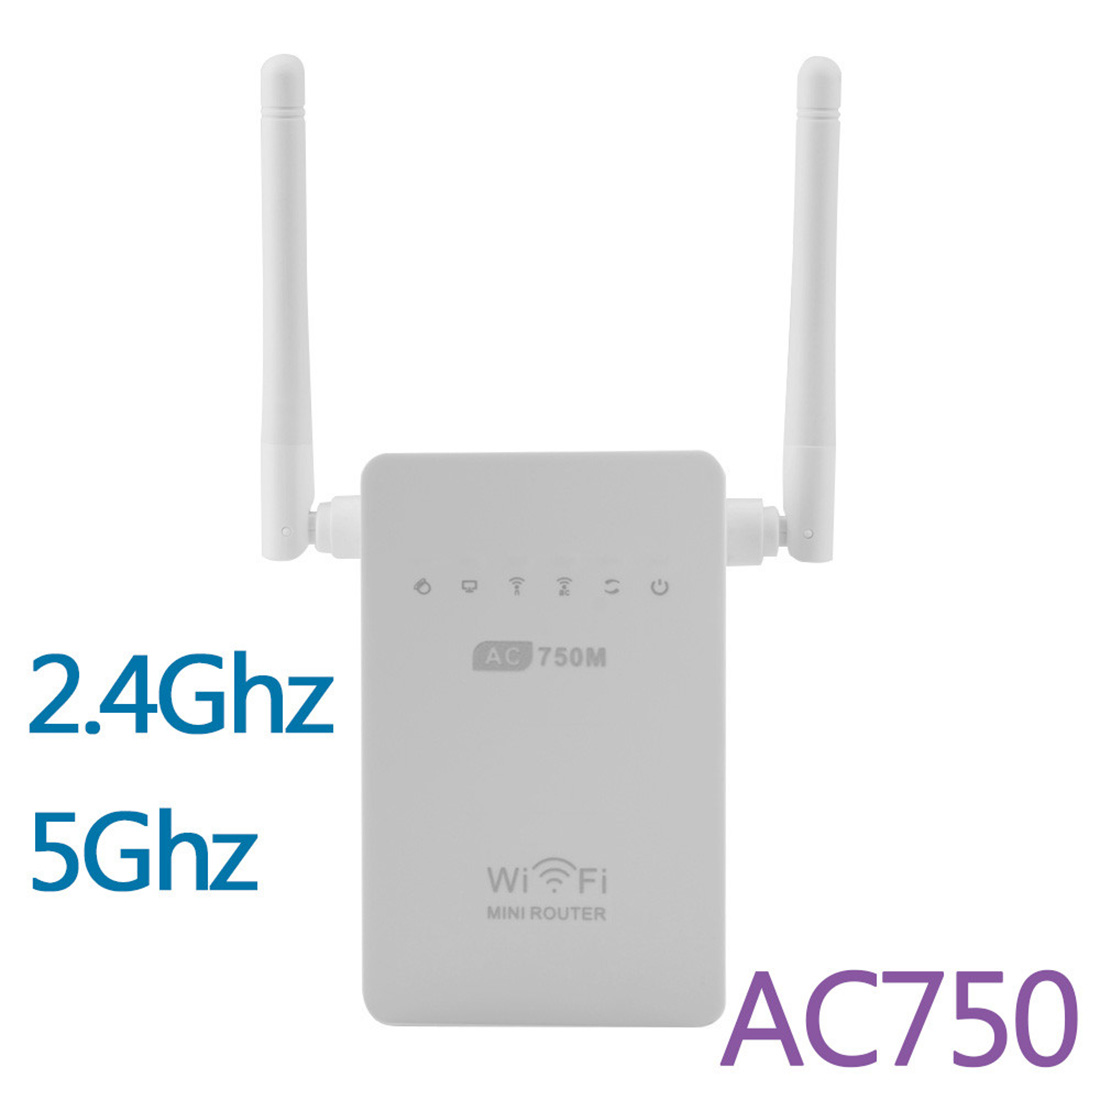 NOYOKERE 750M Wireless-AC Router AC750 Dual Band 2.4GHz/5GHz Wifi Repeater Extender Booster 802.11AC WPS AP Antenna EU/US totolink ca750 750m dual band wireless потолок ap центр отель дом wifi полный охват